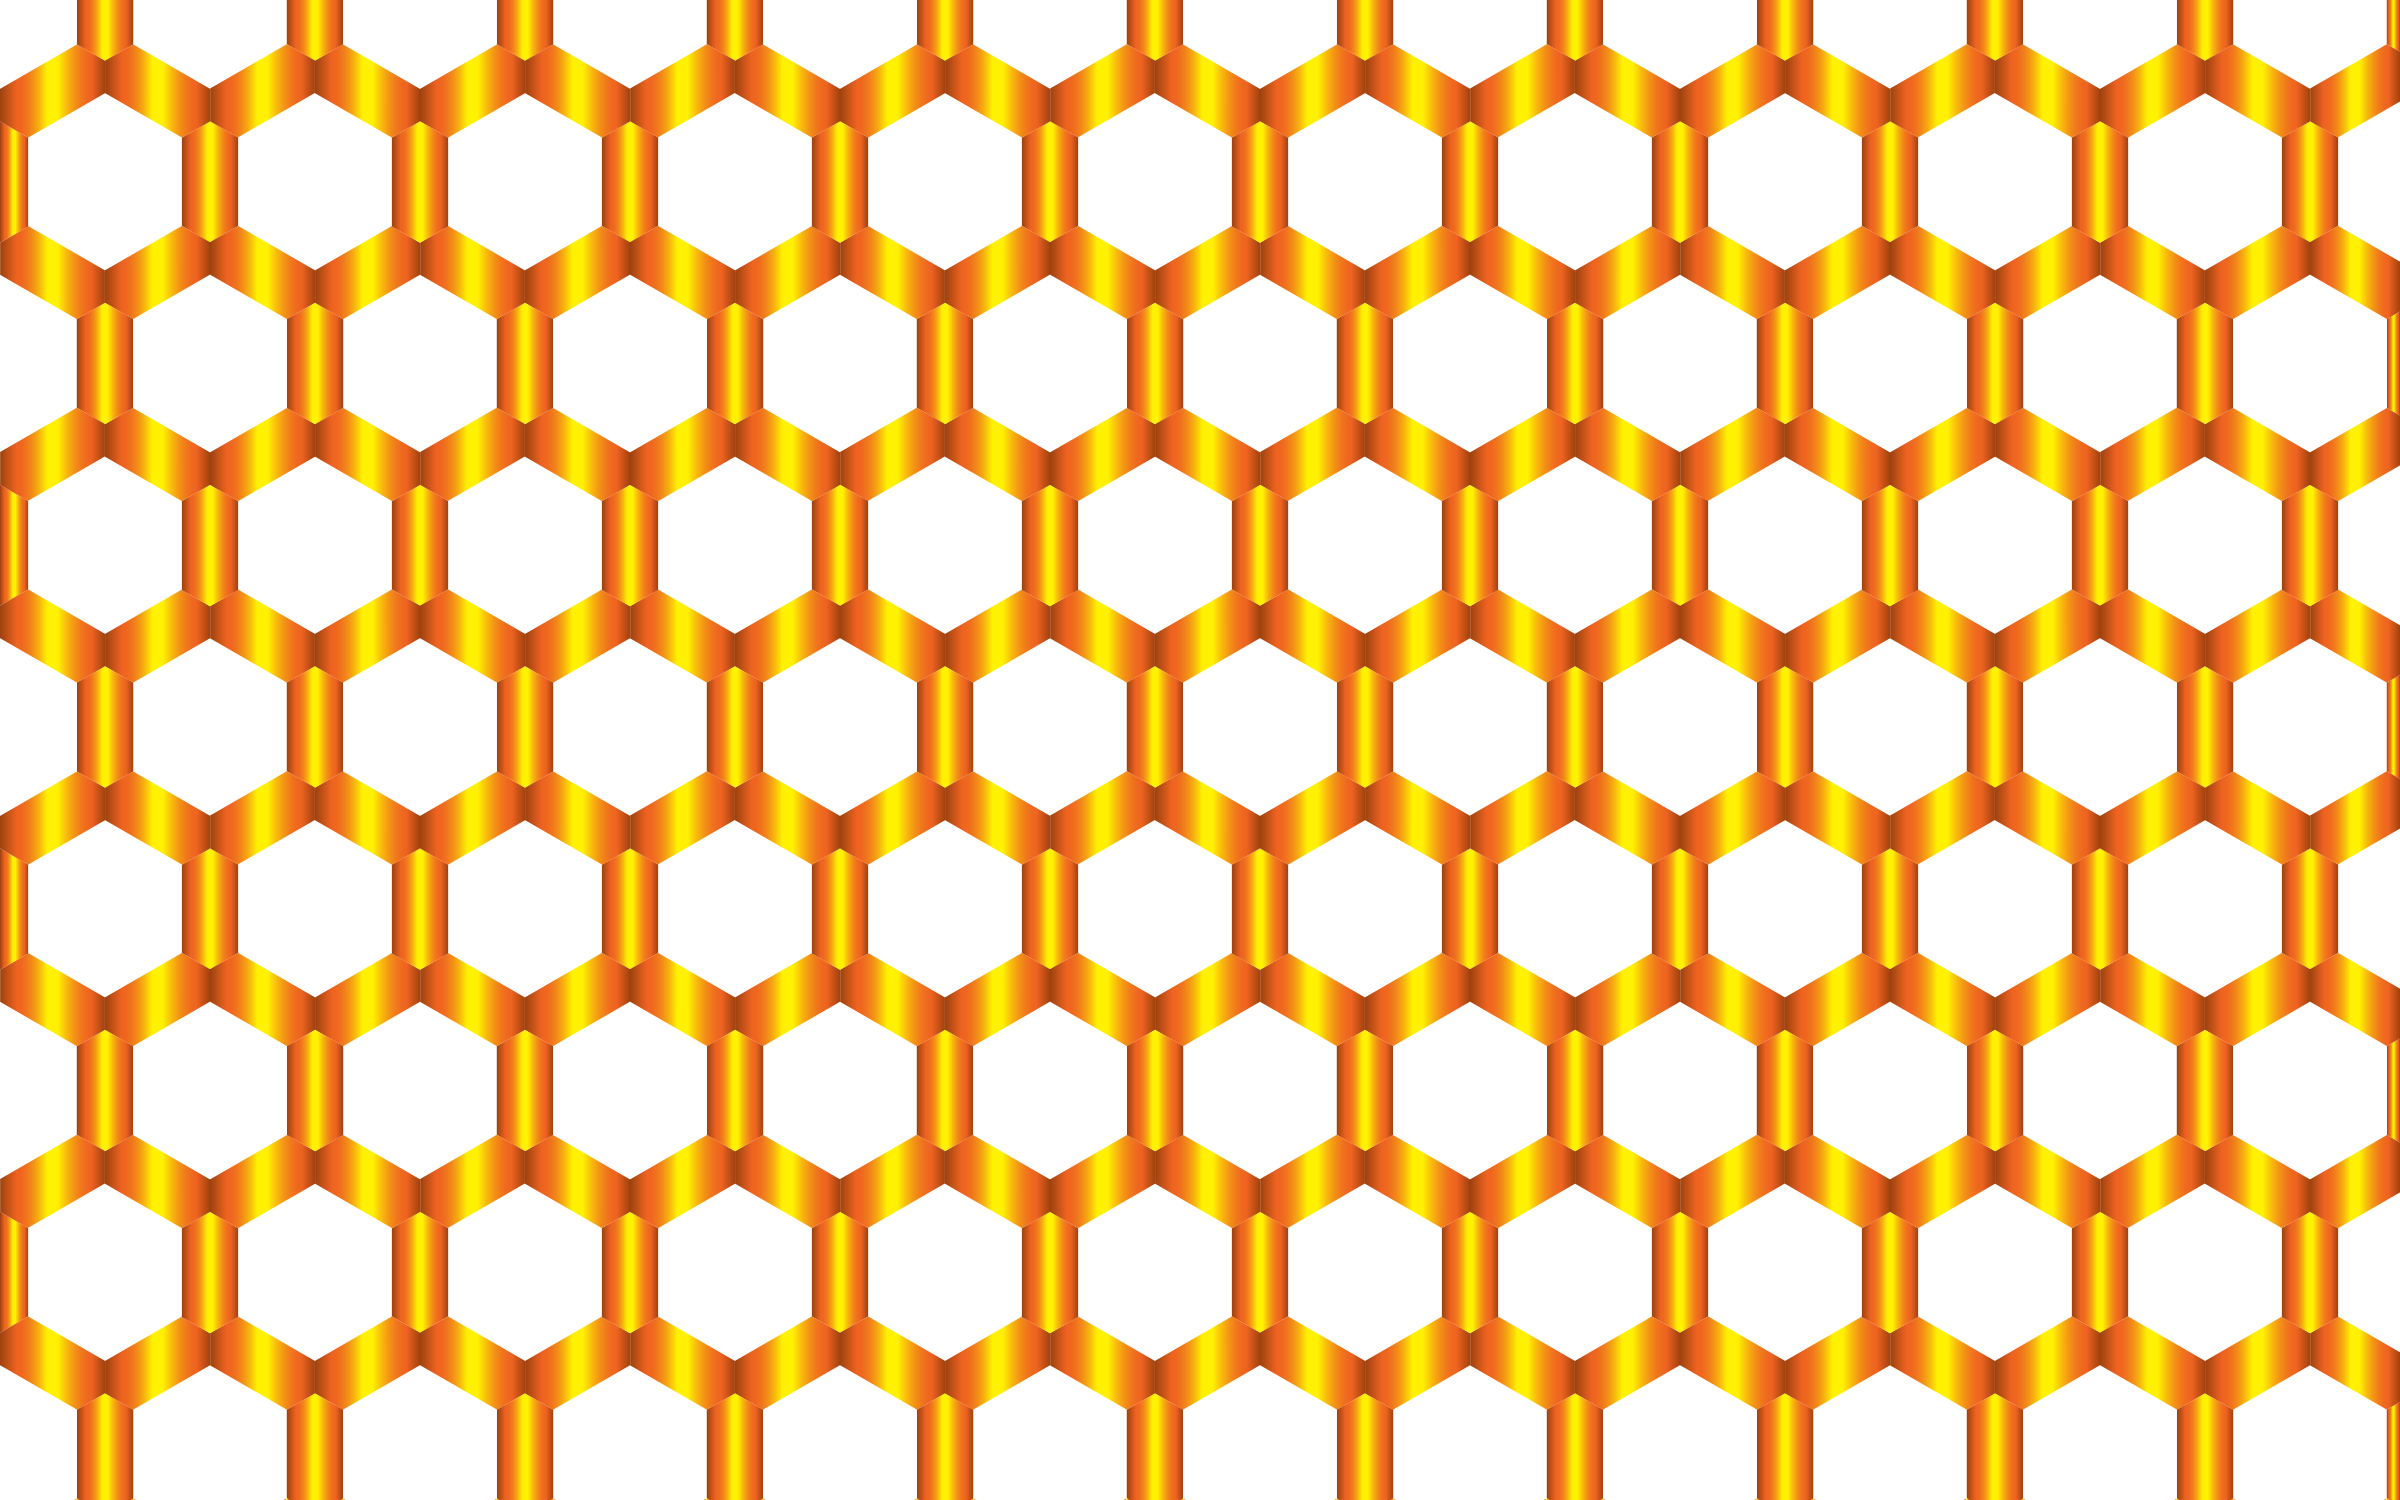 Prismatic Hexagonal Geometric Pattern 6 No Background by GDJ